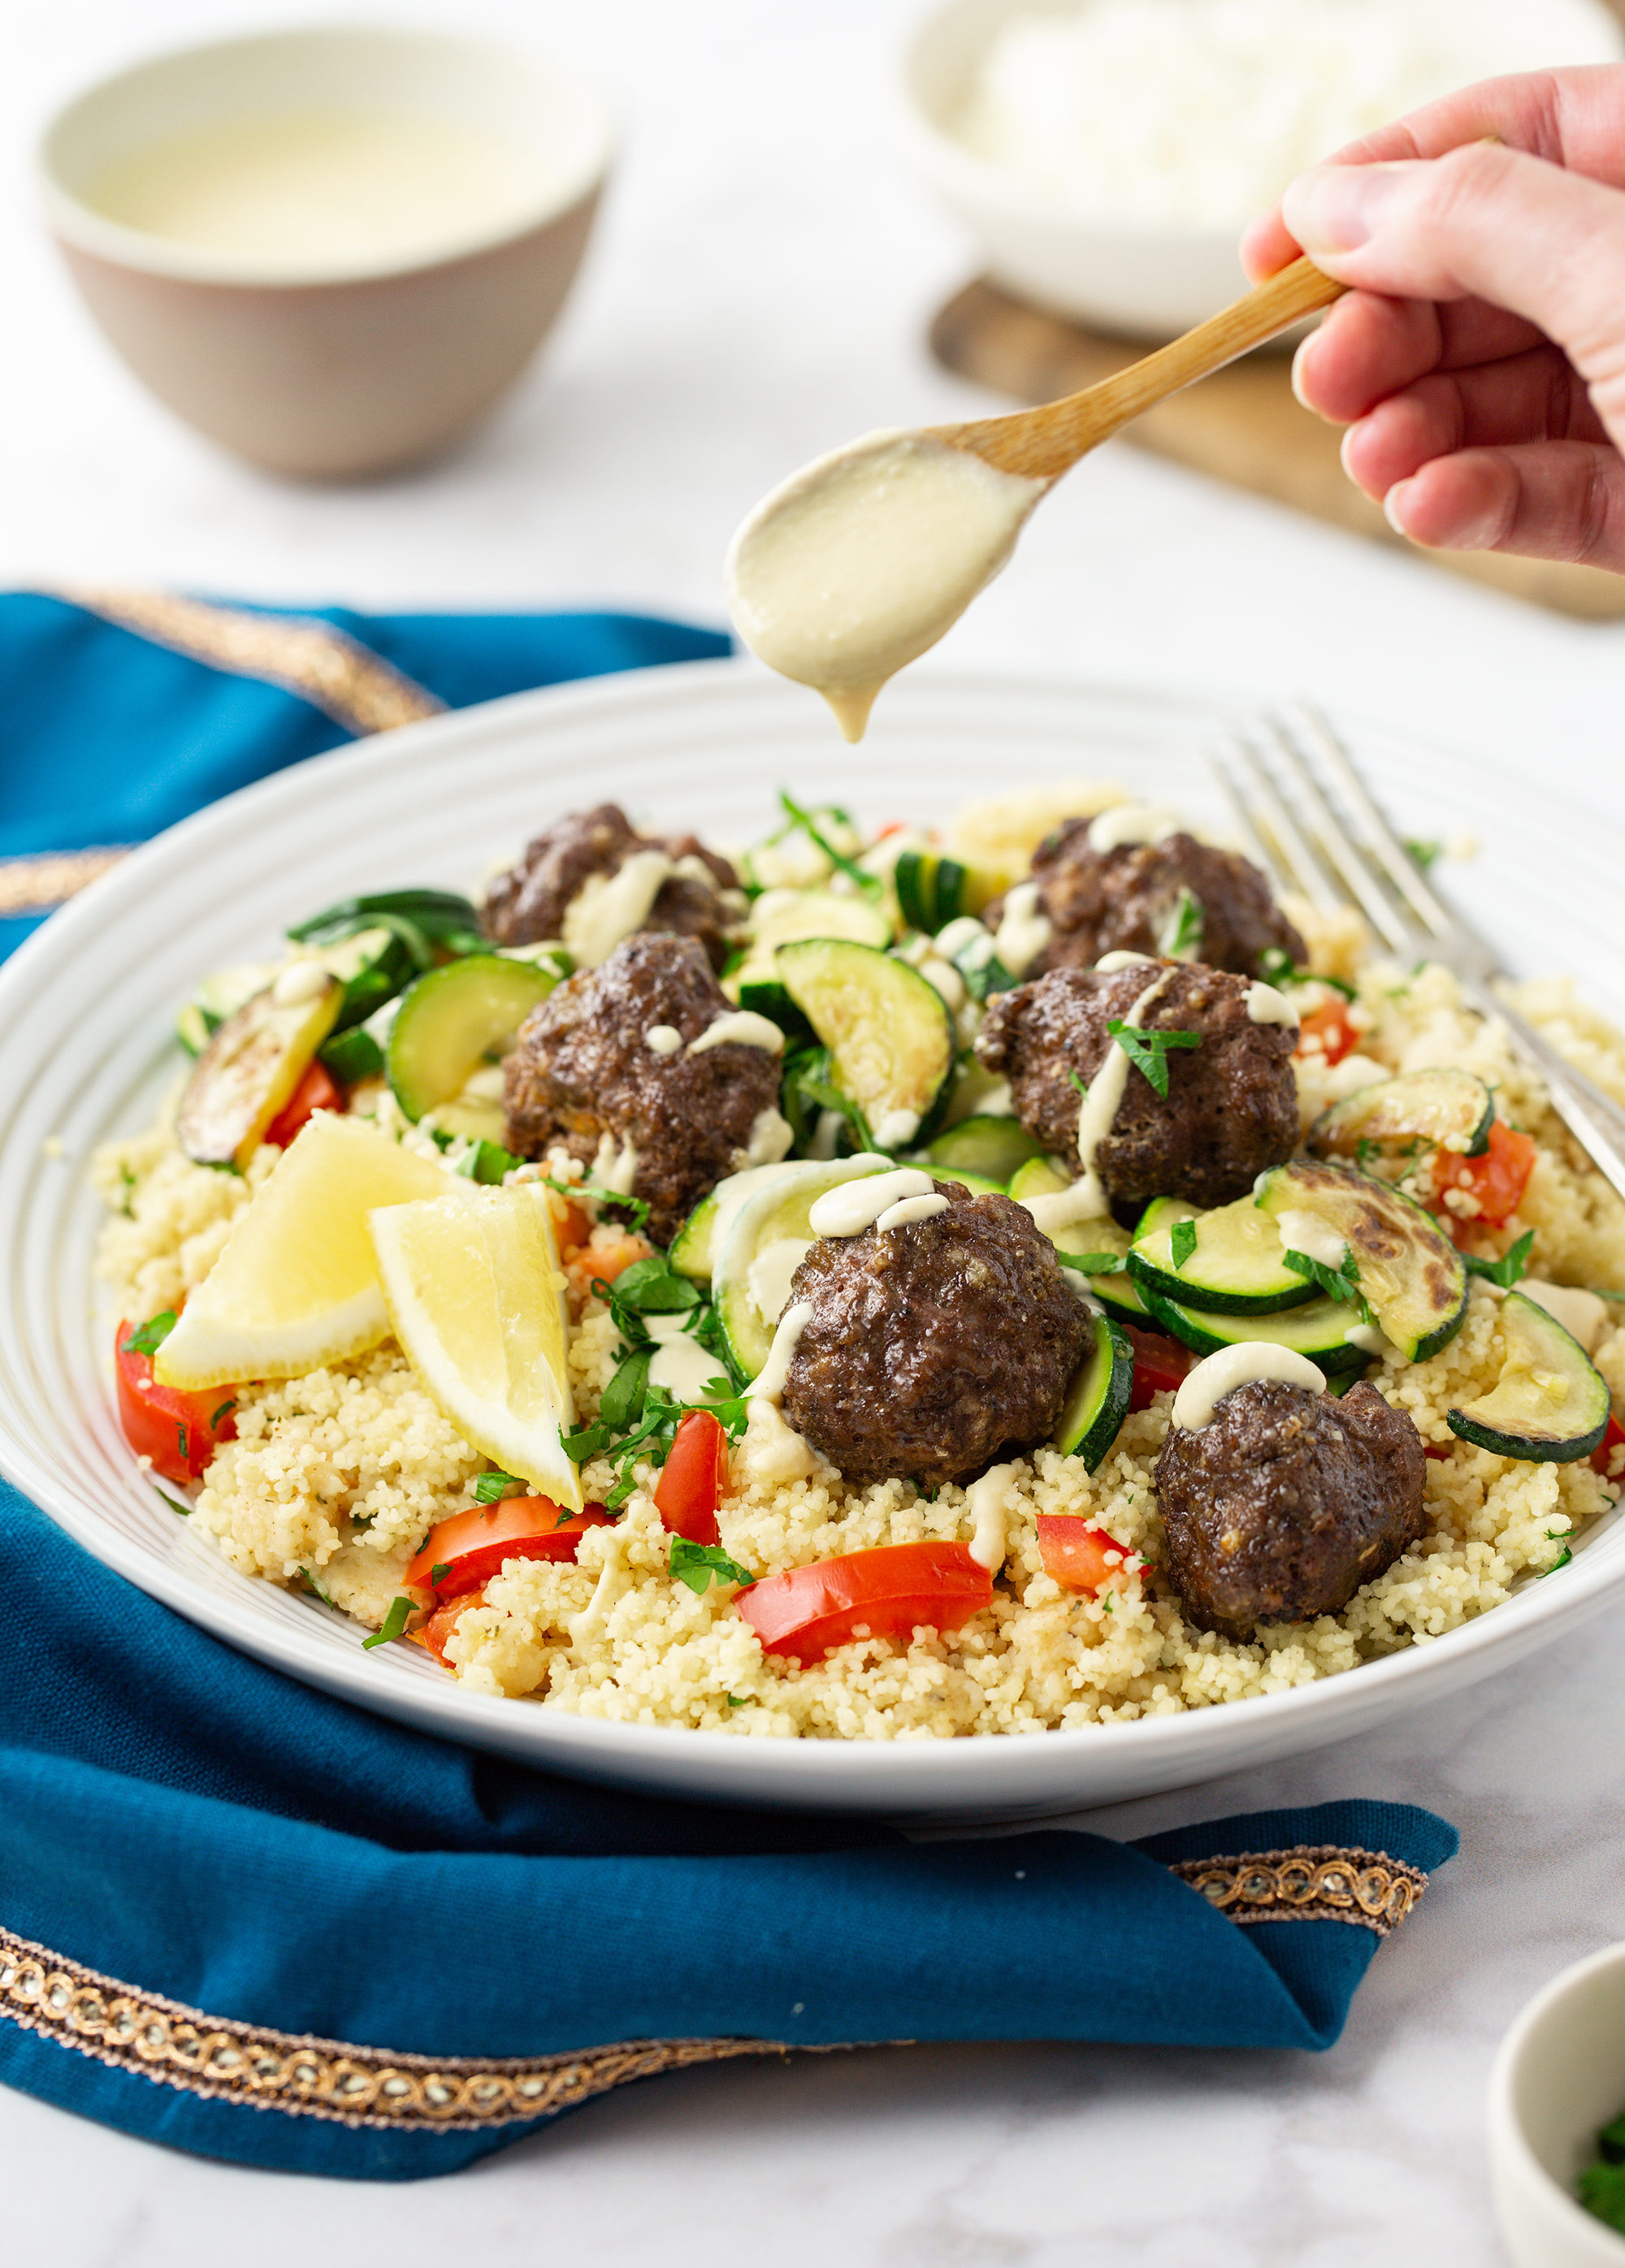 Lebanese Beef & Feta Meatballs with Zucchini, Couscous Tabbouleh and Hummus Drizzle